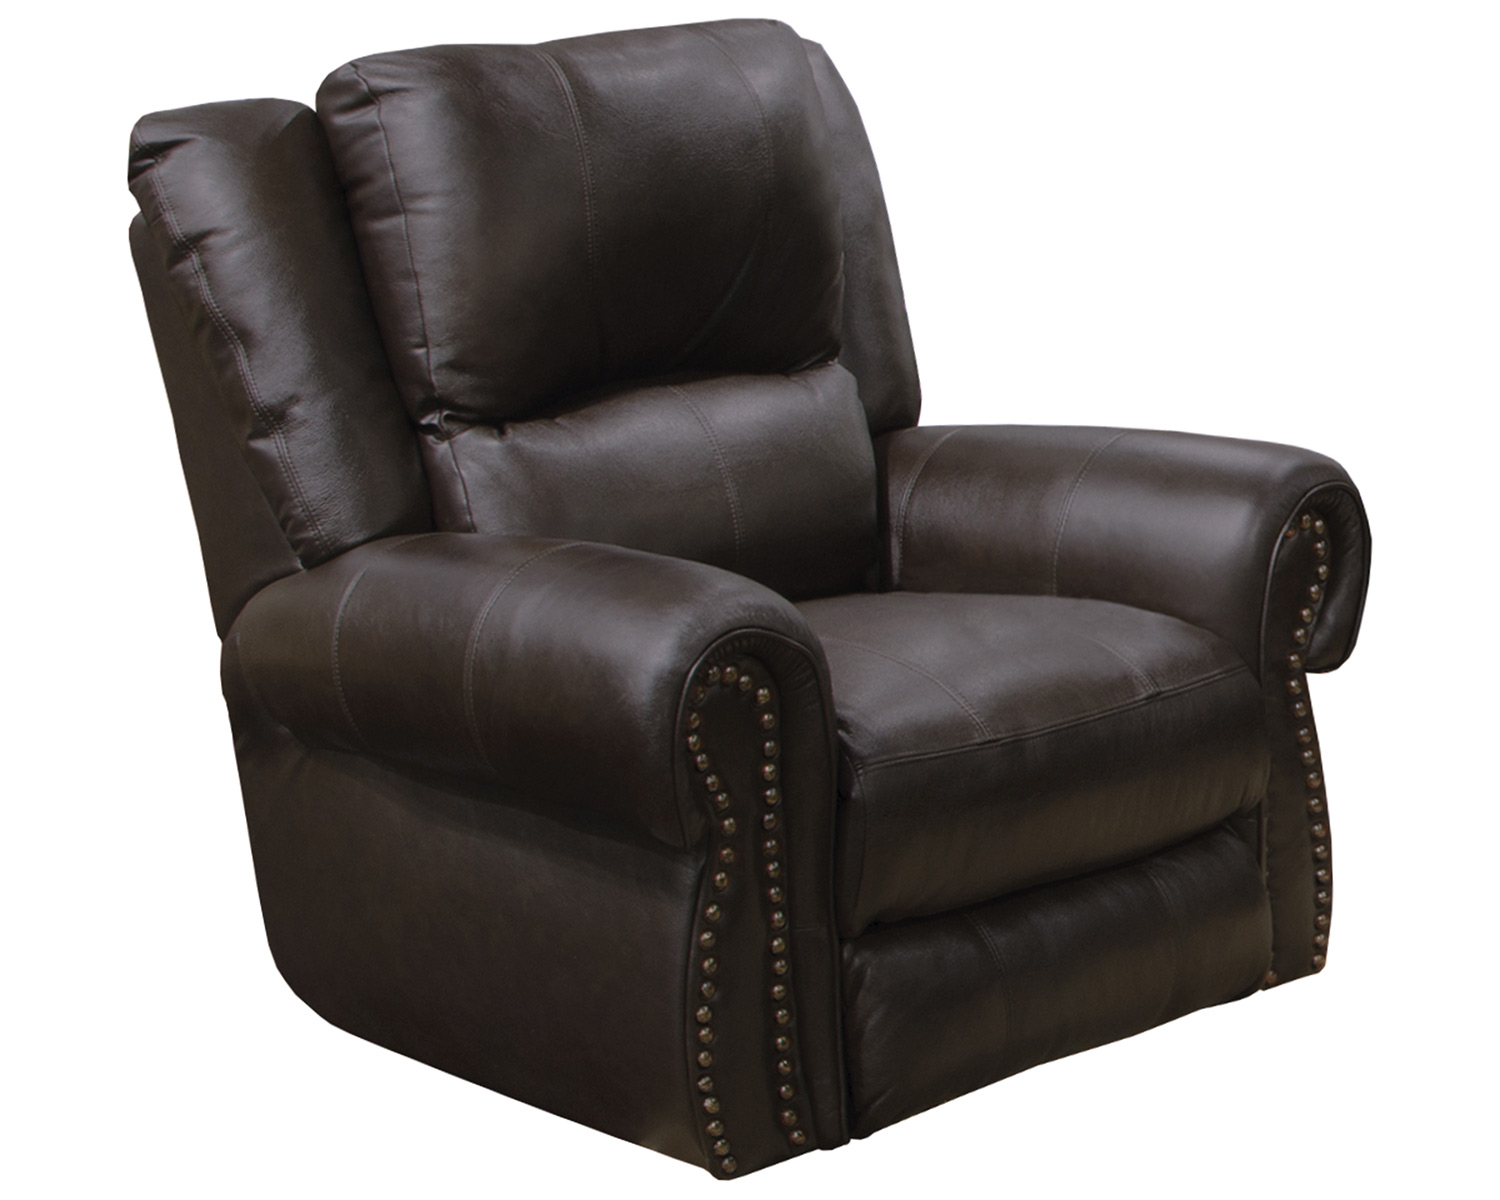 CatNapper Messina Leather Power Recliner Chair - Chocolate